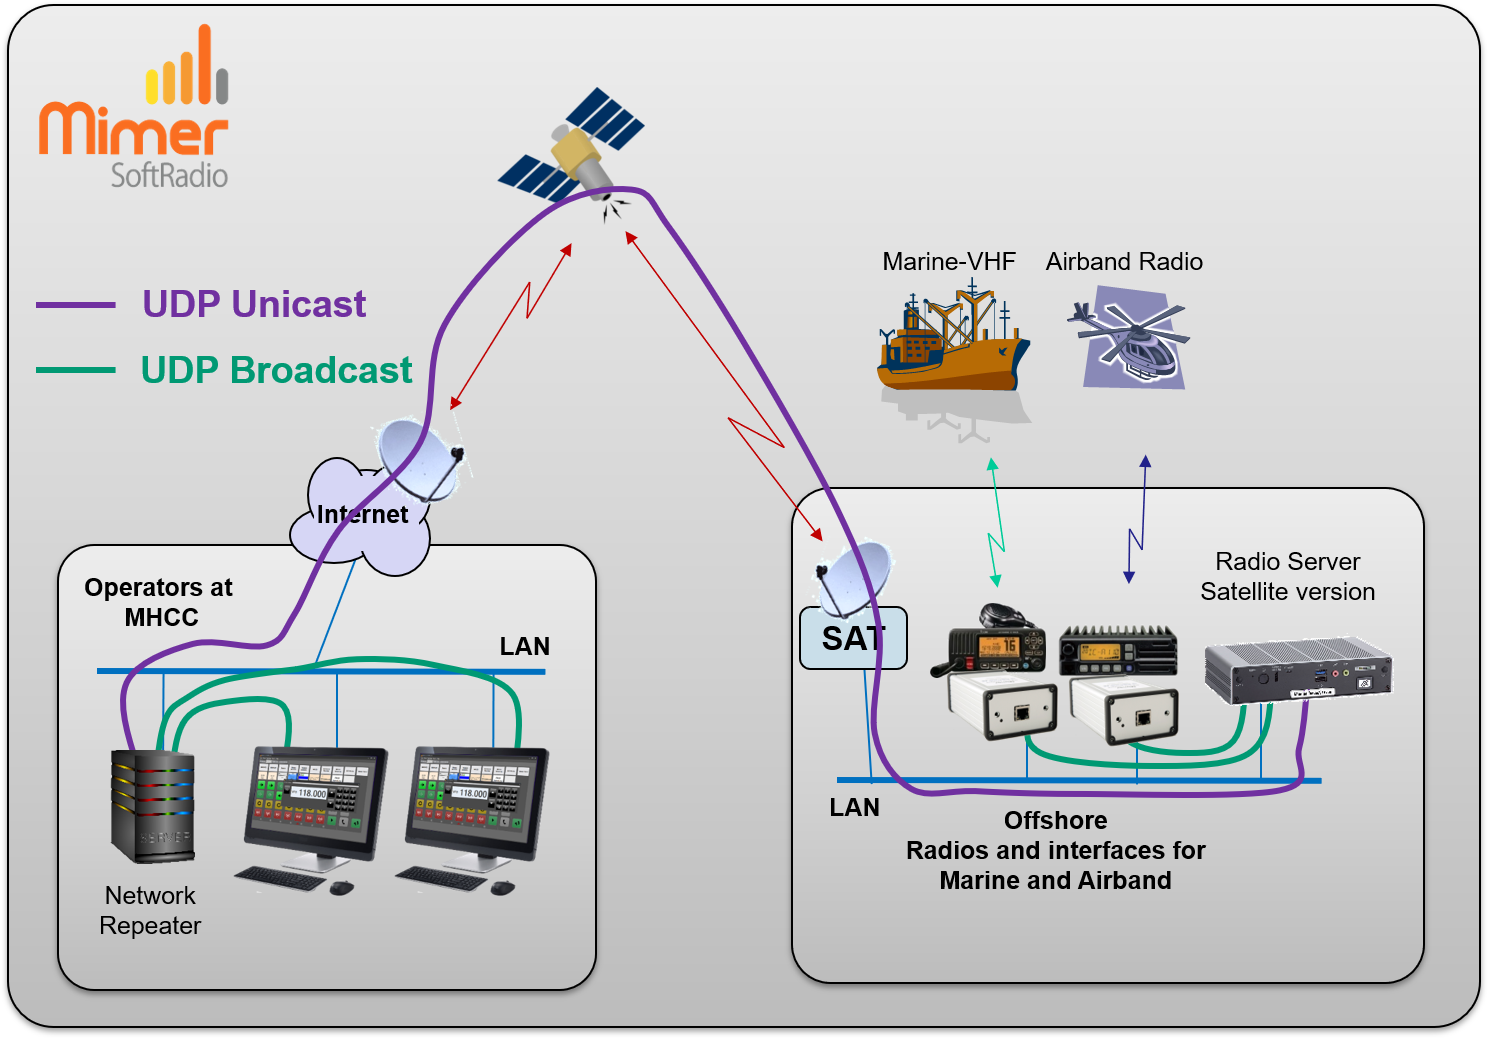 Mimer RadioServer in satellite mode, showing the IP connections